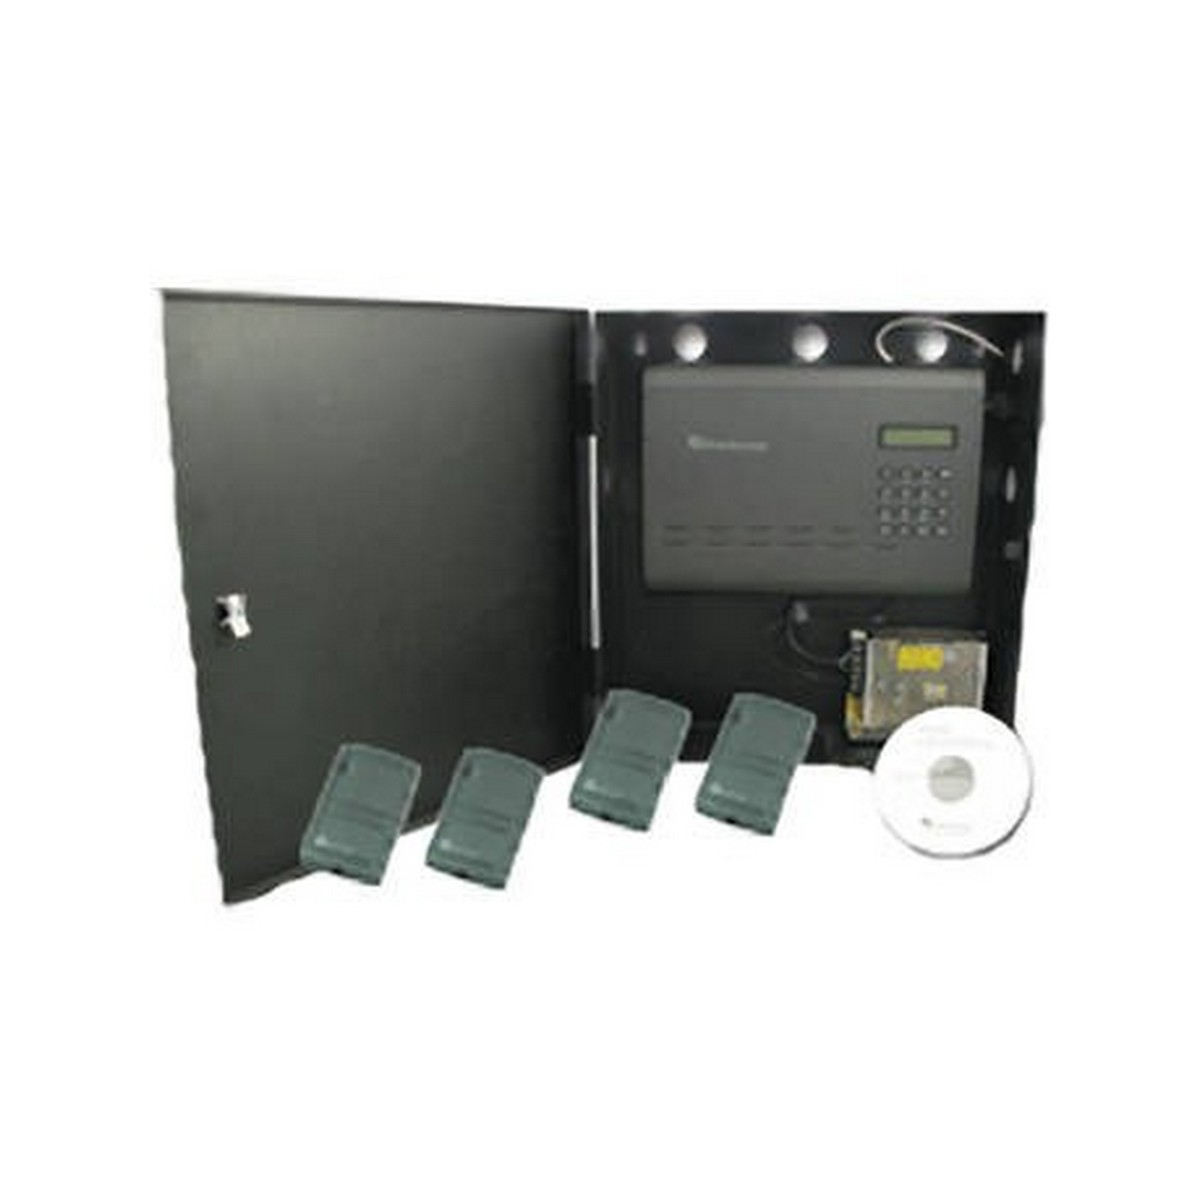 Everfocus NAV-04-1B 4 Door NAV kit with 1 pre-installed 2 door expansion, 4 single gang readers, includes desk top reader. Expandable to handle over 1000 readers.